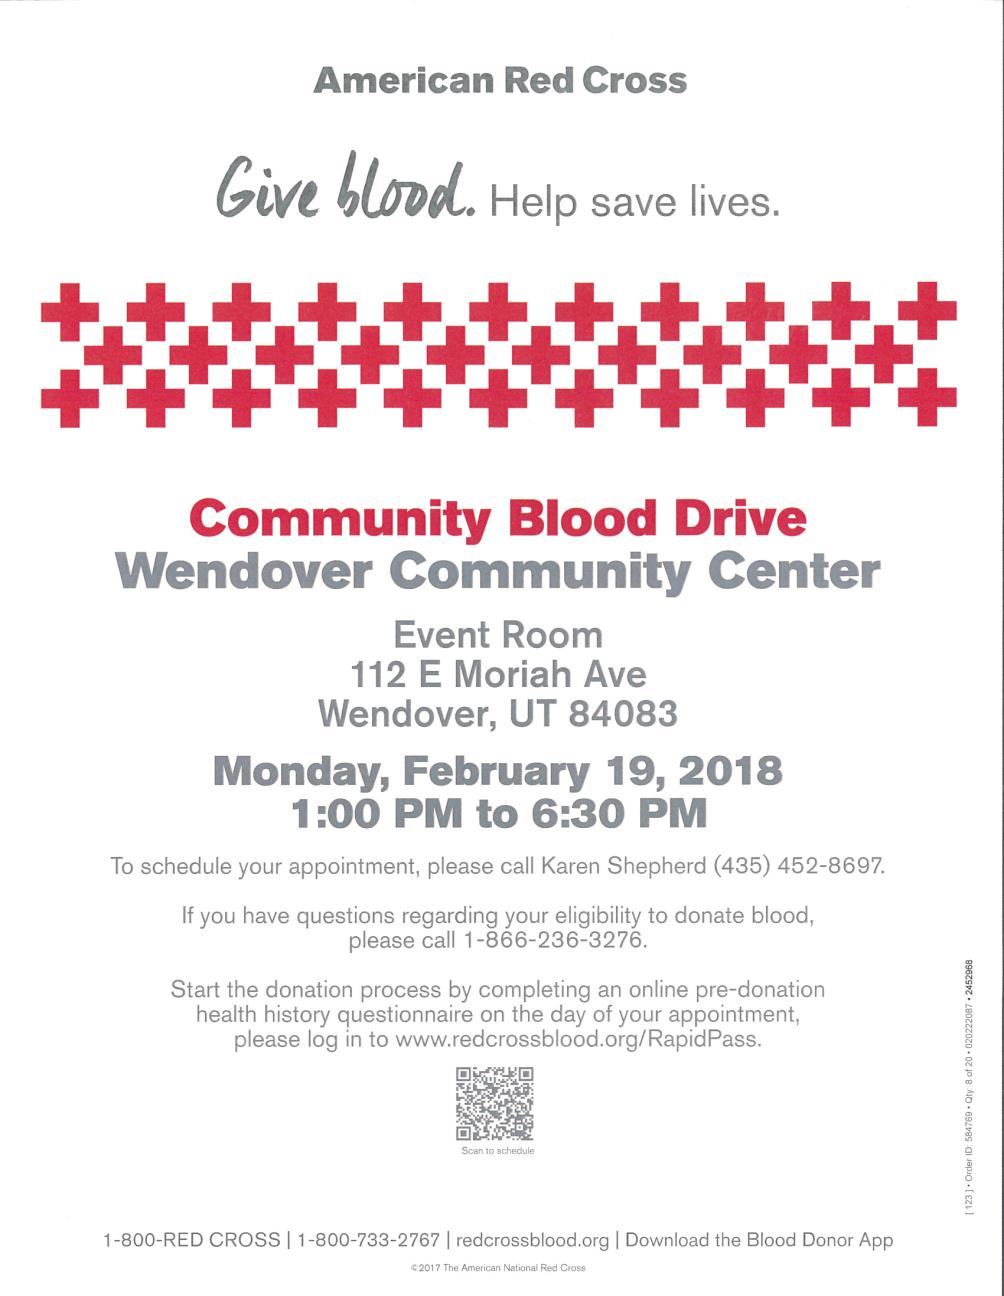 American Red Cross - Community Blood Drive